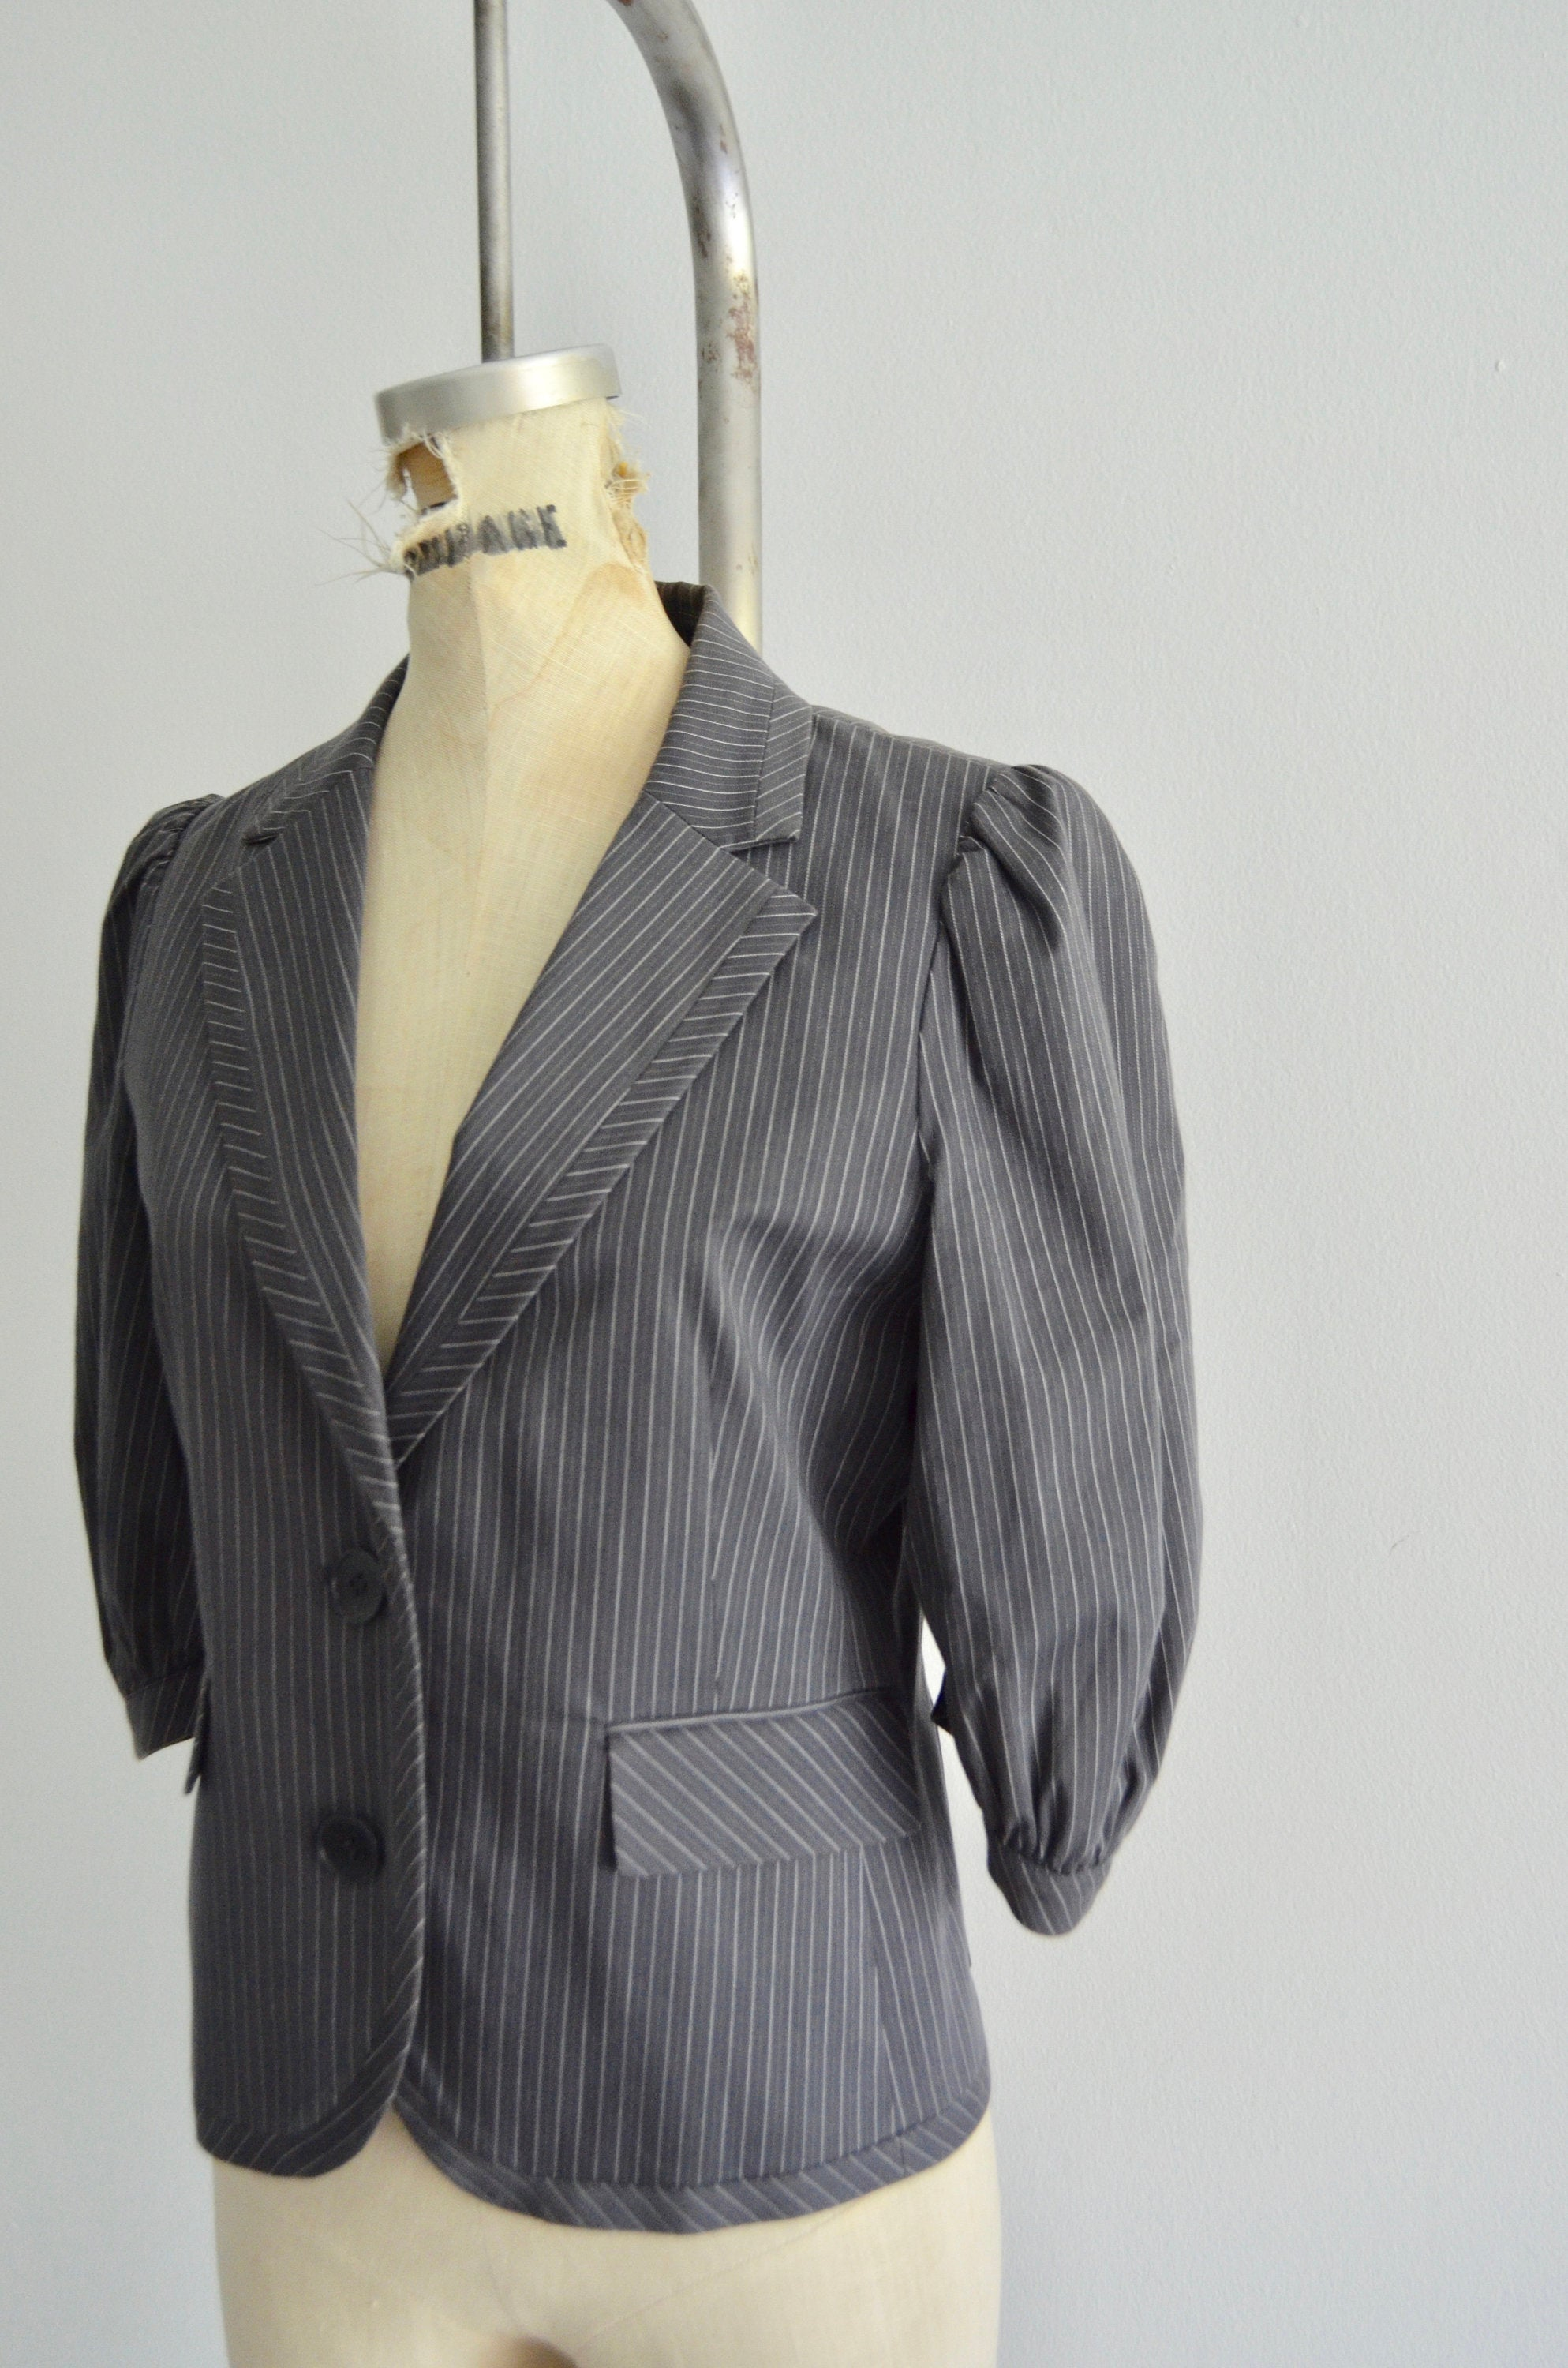 Bcbg Maxazria Cropped Puff Sleeve Blazer Gray Cream Striped Top Blouse Tailored Fashion Designer